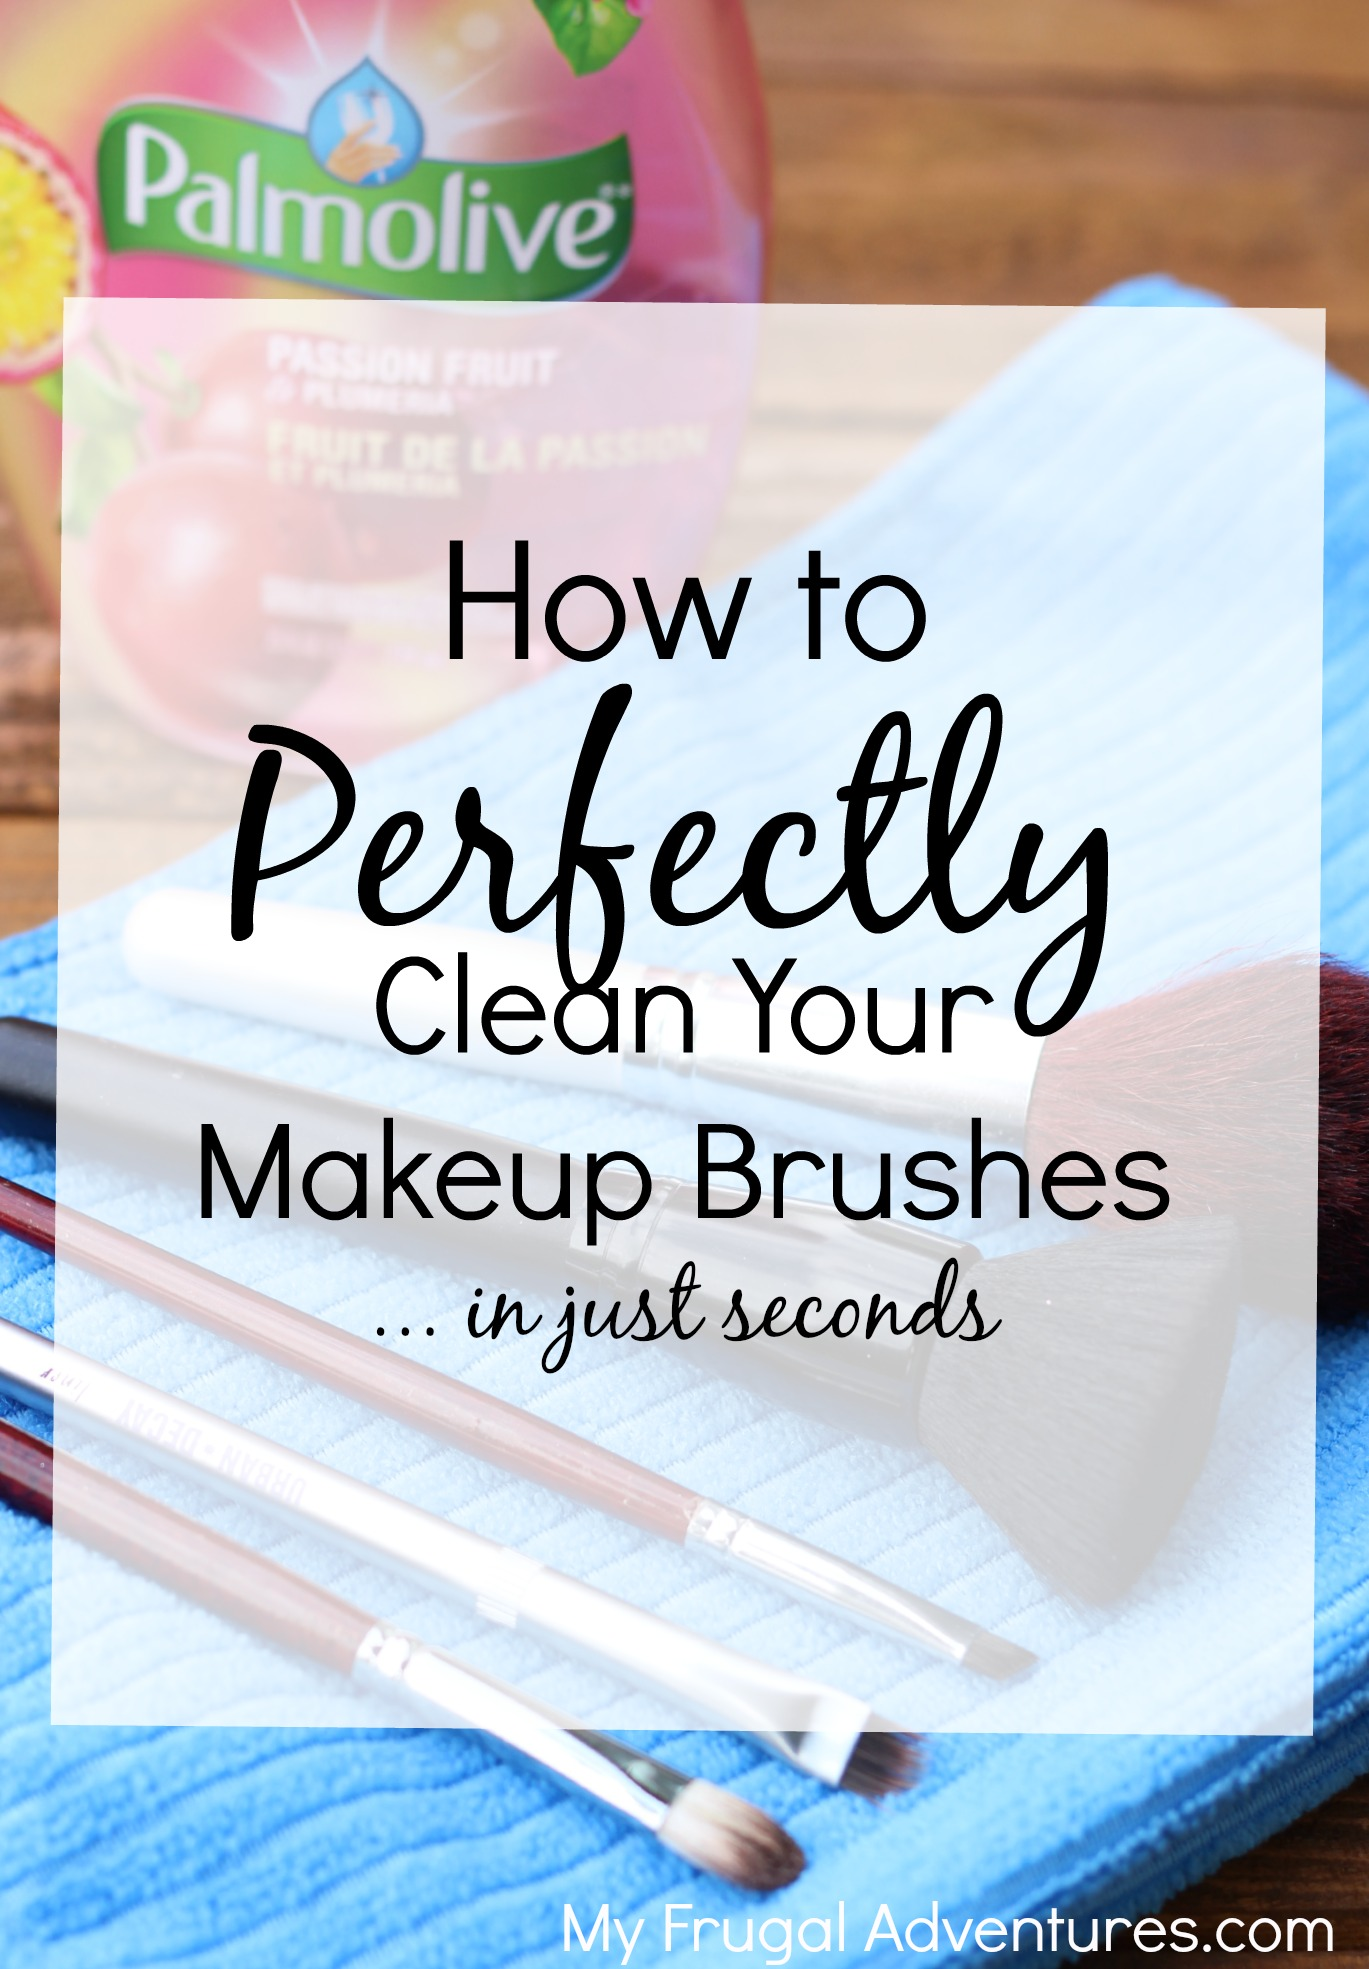 How to Clean Makeup Brushes (So Fast and Easy!)